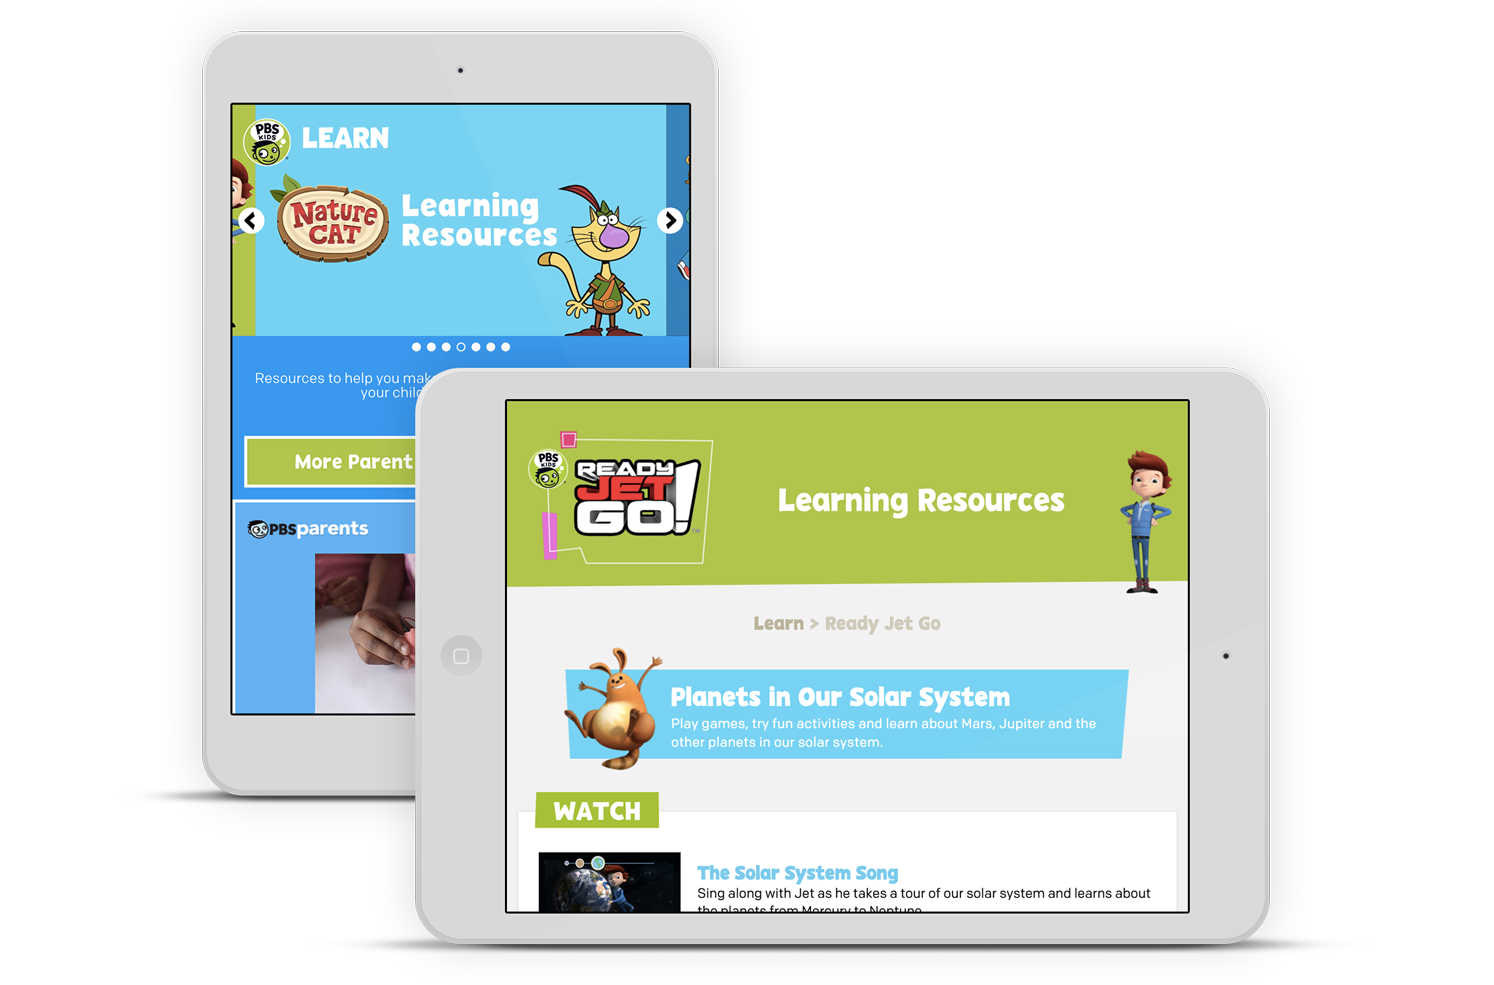 Web browser, iPhone, and iPad with PBS KIDS displayed